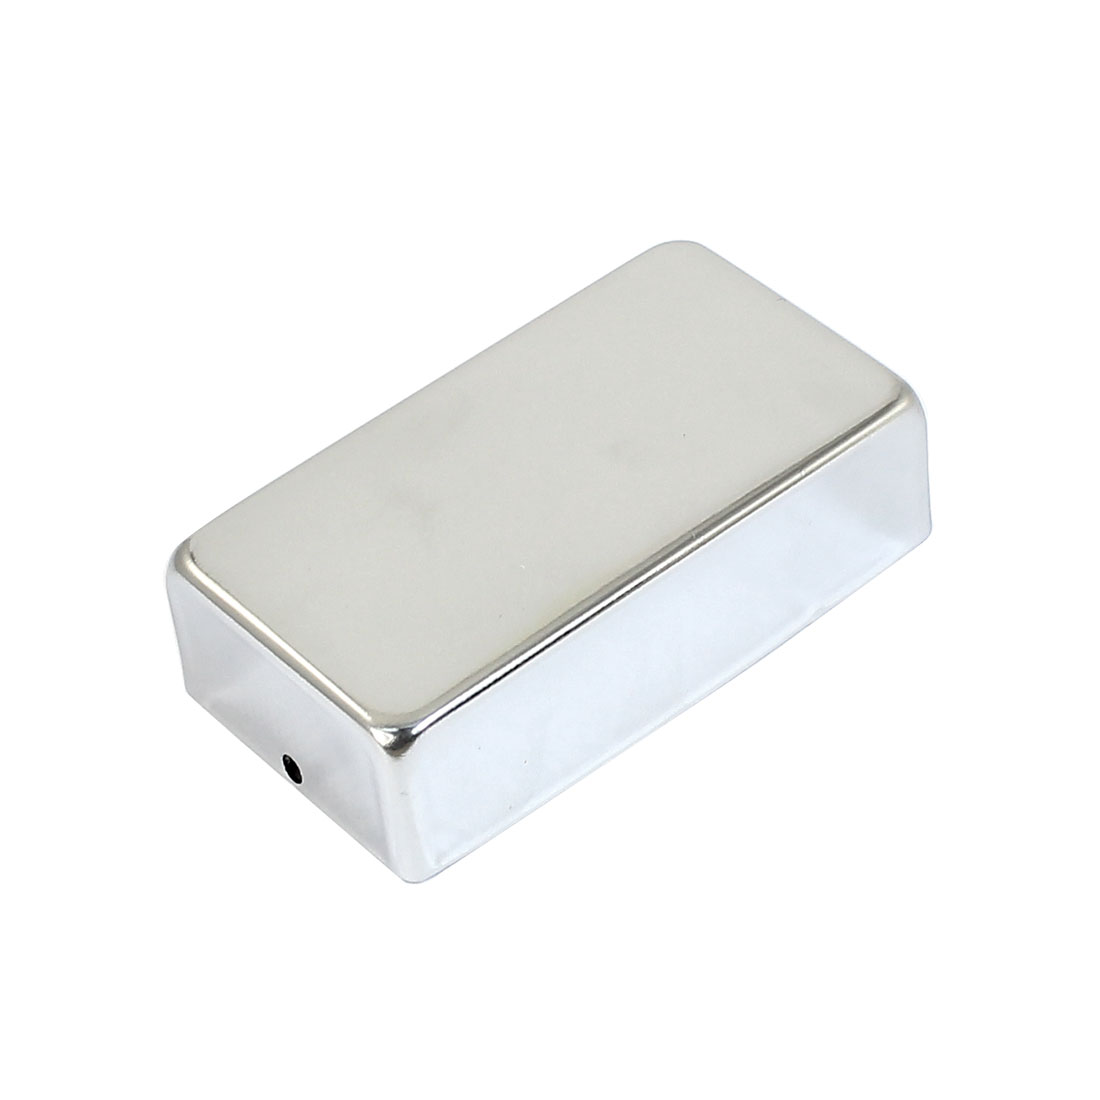 Electric Guitar Humbucker Pickup 7cm x 4cm x 2cm No-Hole Metal Cover Silver Tone